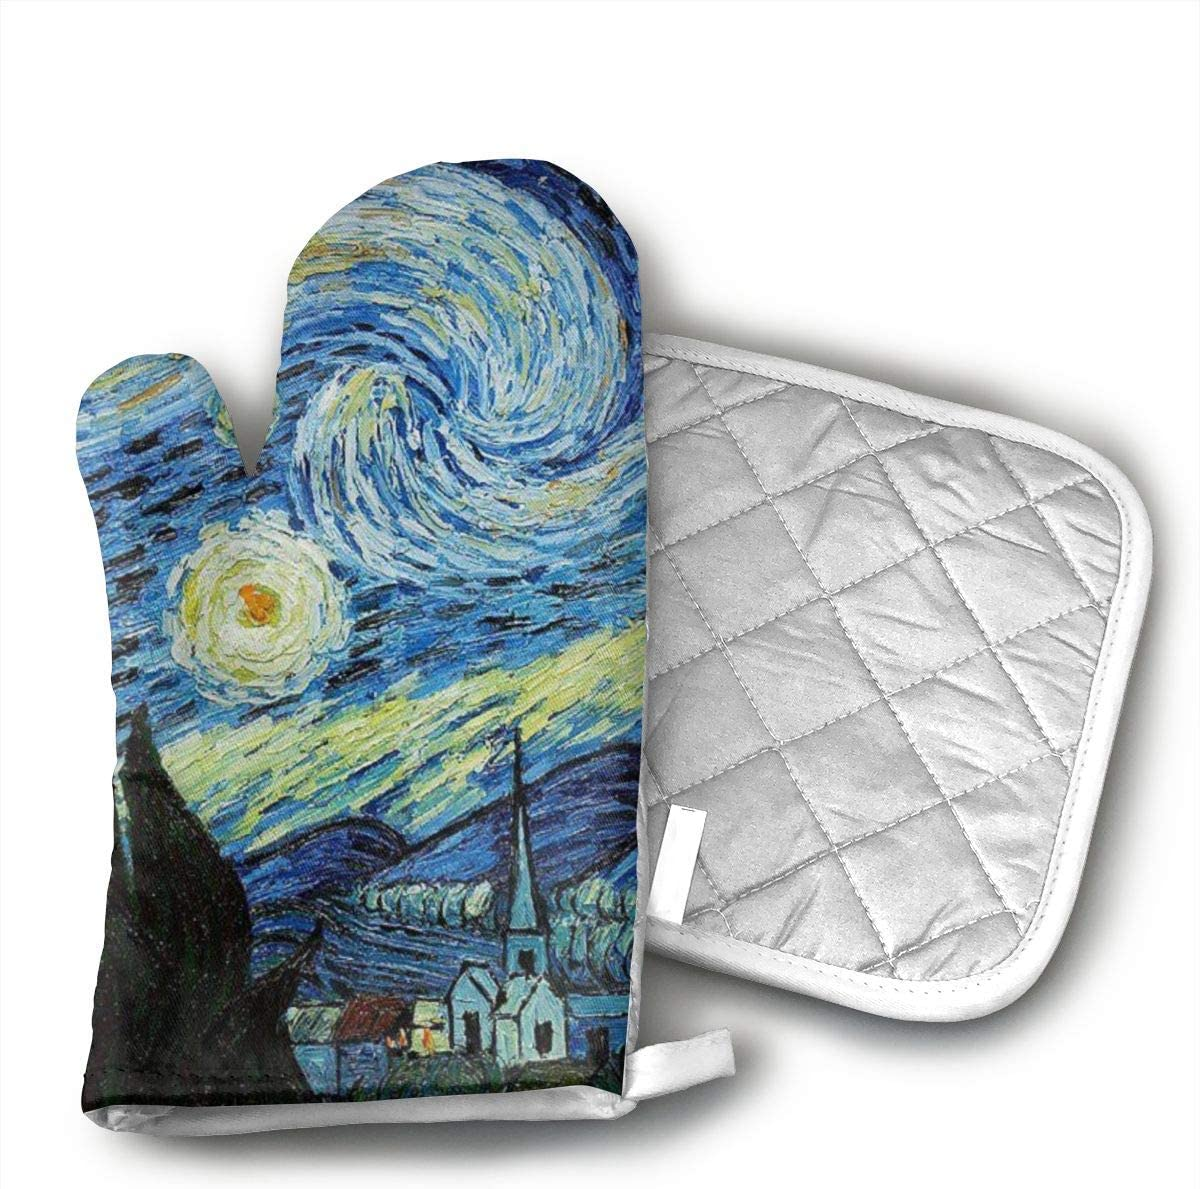 Jiqnajn6 Van Gogh's Paintings Oven Mitts,Heat Resistant Oven Gloves, Safe Cooking Baking, Grilling, Barbecue, Machine Washable,Pot Holders.